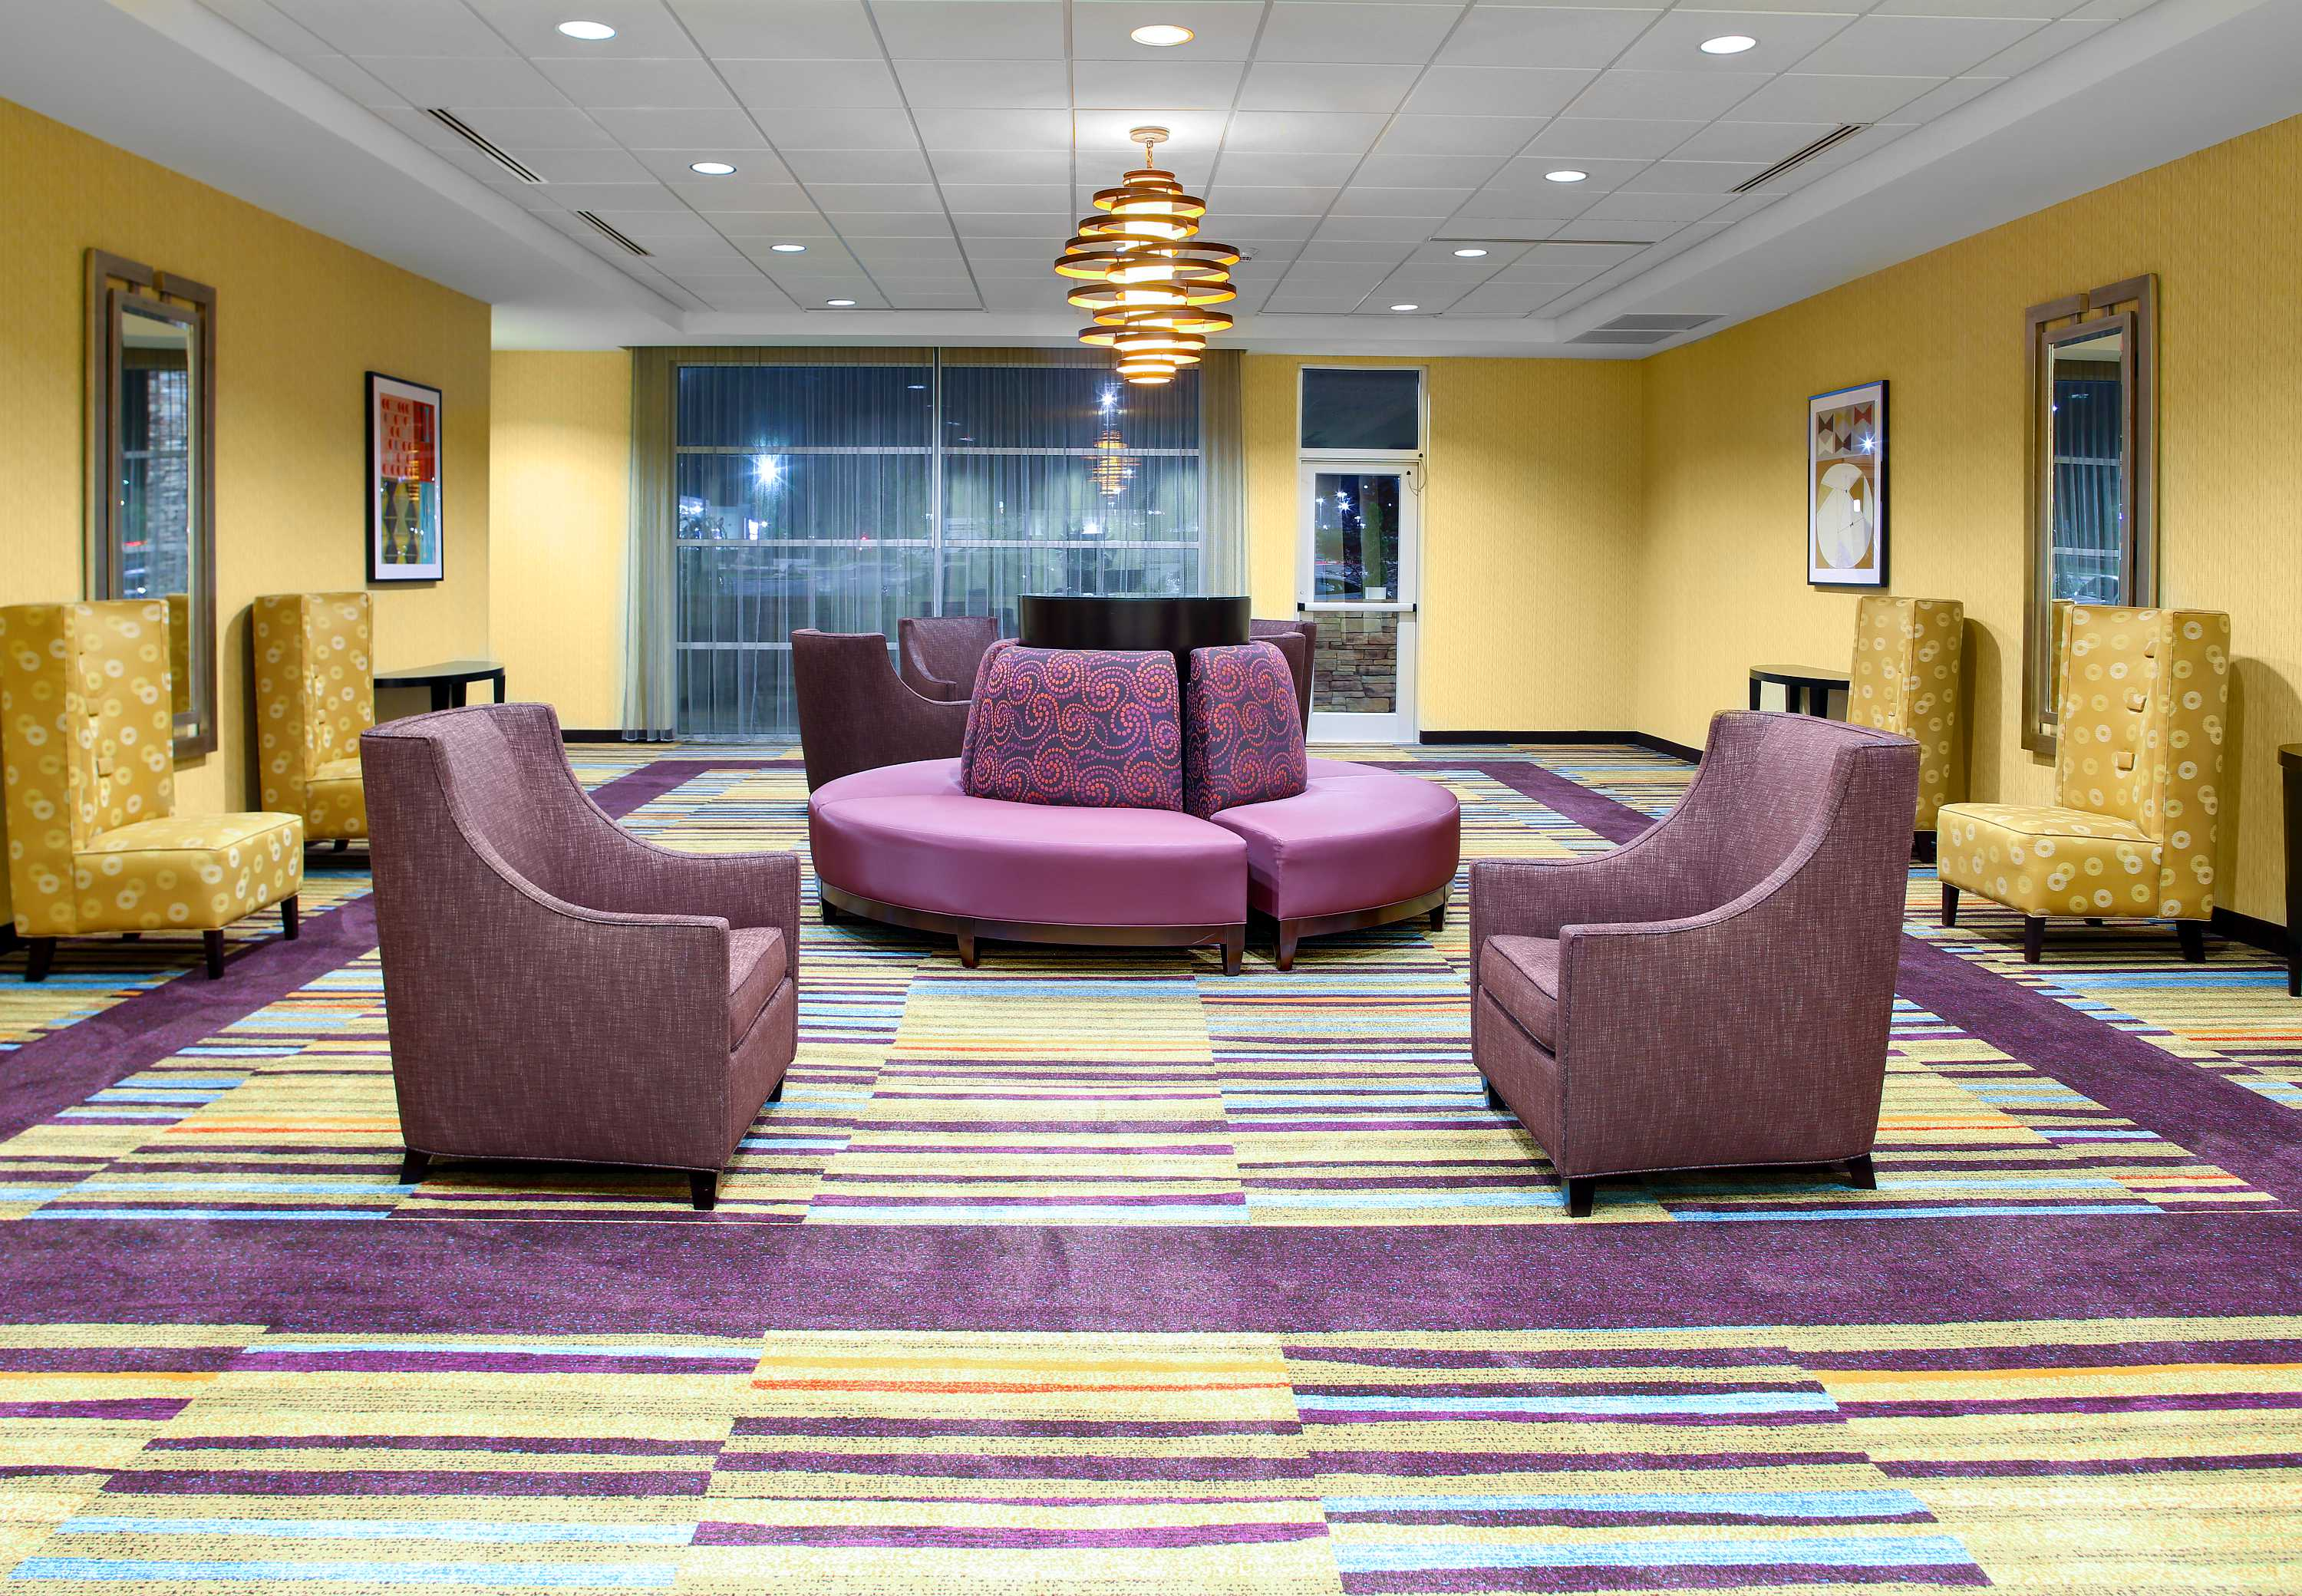 Fairfield Inn & Suites by Marriott Atlanta Stockbridge image 16